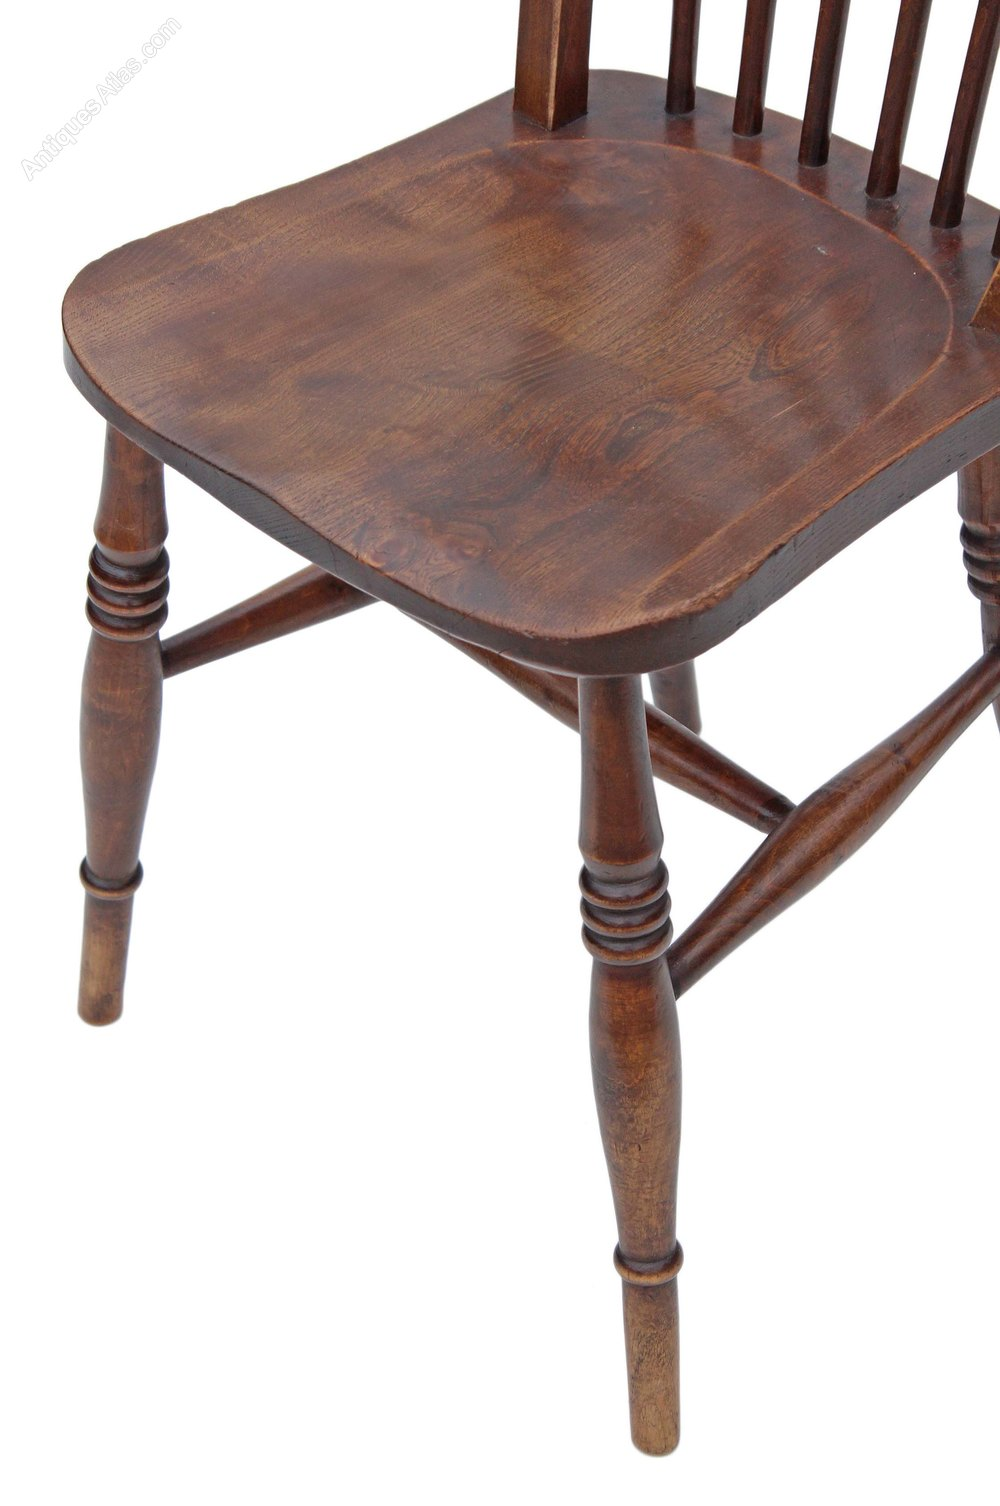 Set Of 6 Spindle Back Ash Kitchen Dining Chairs - Set Of 6 Spindle Back Ash Kitchen Dining Chairs - Antiques Atlas